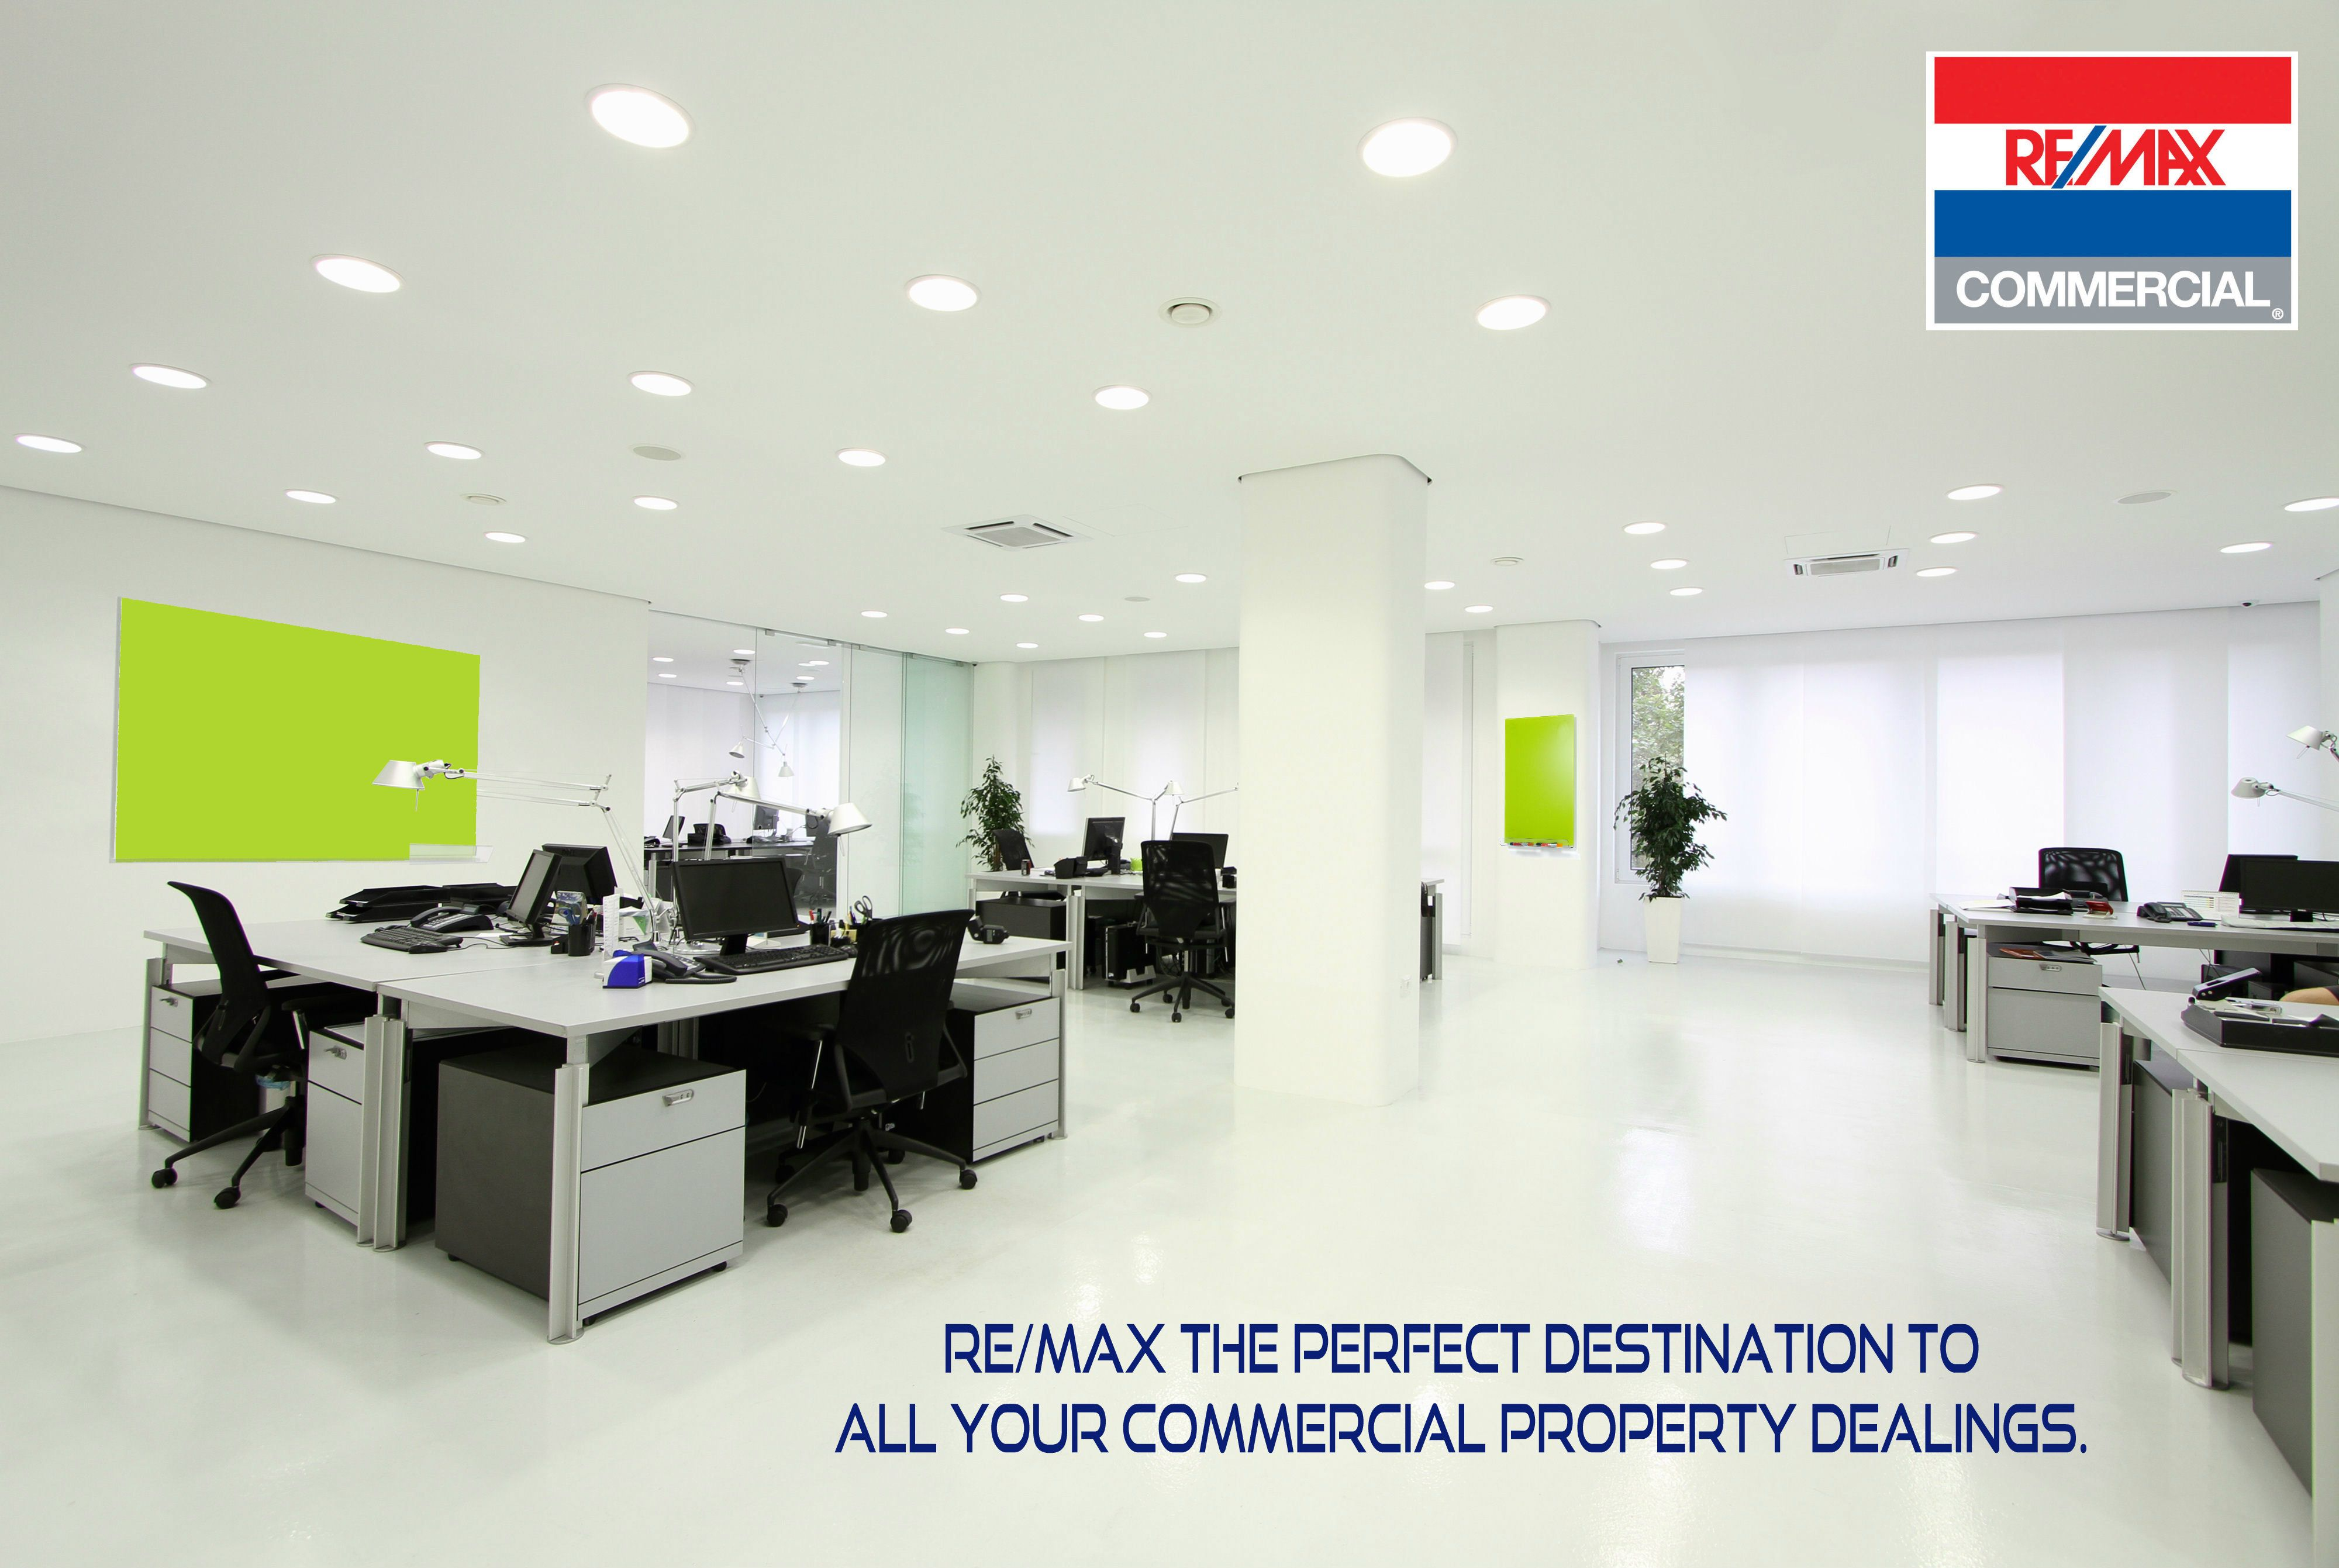 Commercial Brokers Office interiors, Clean office